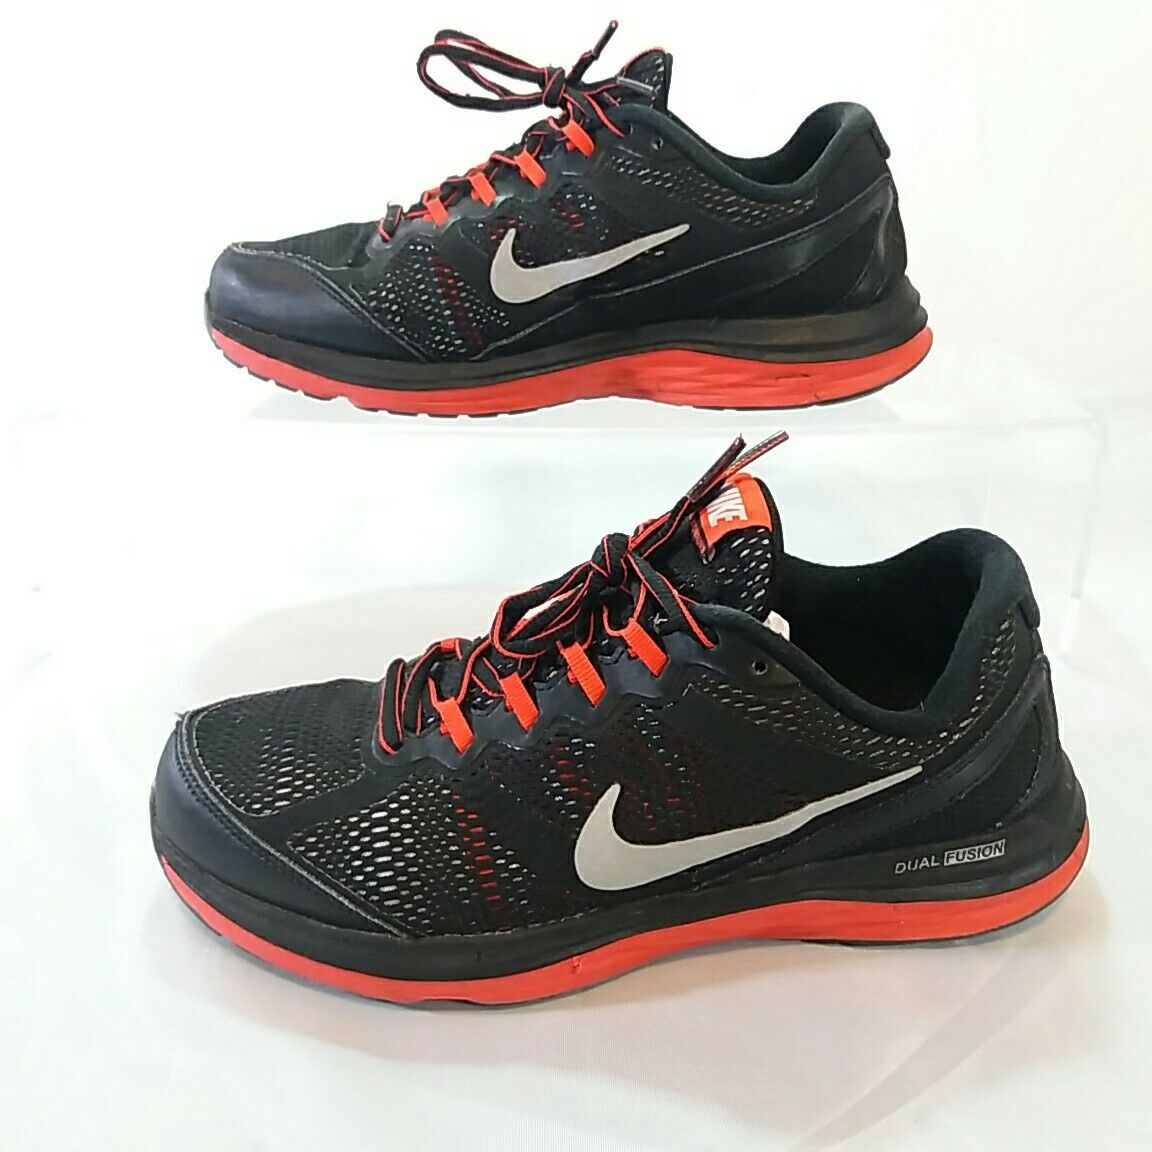 Nike Men's Dual Fusion Run 3 Running Shoe Comfortable best-selling model of the brand